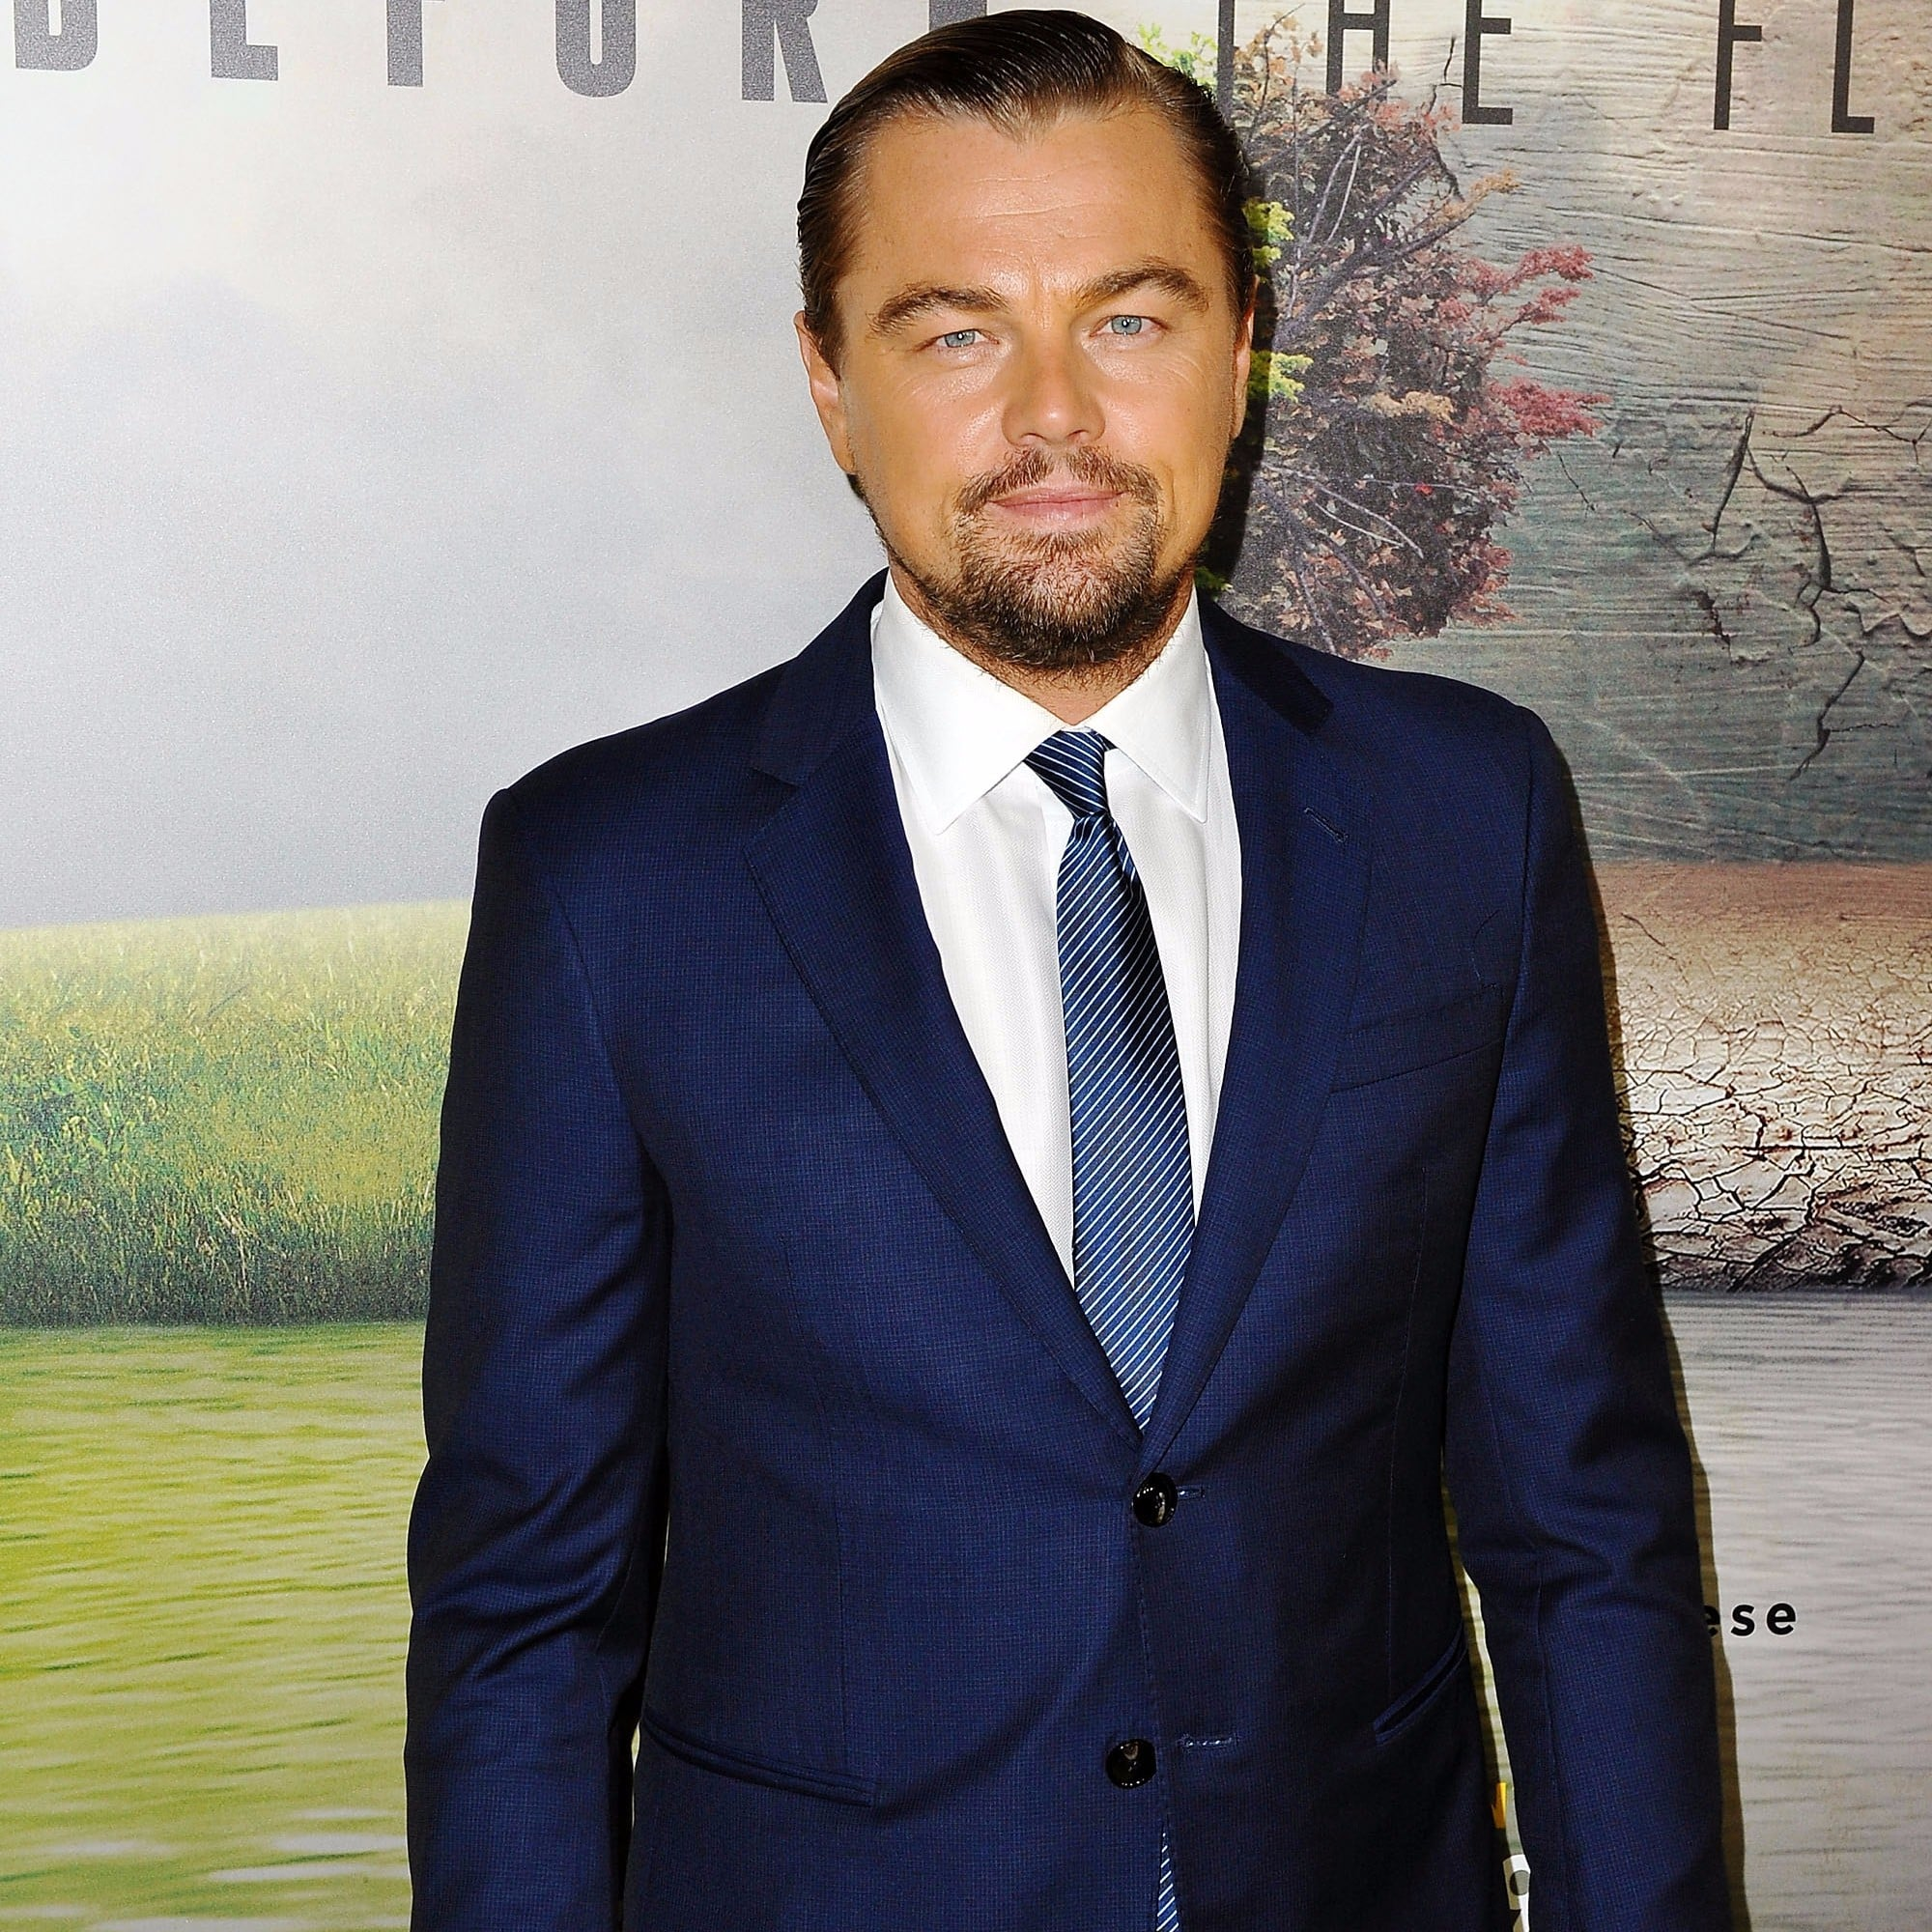 Leonardo DiCaprio Documentary Before the Flood on YouTube | POPSUGAR News